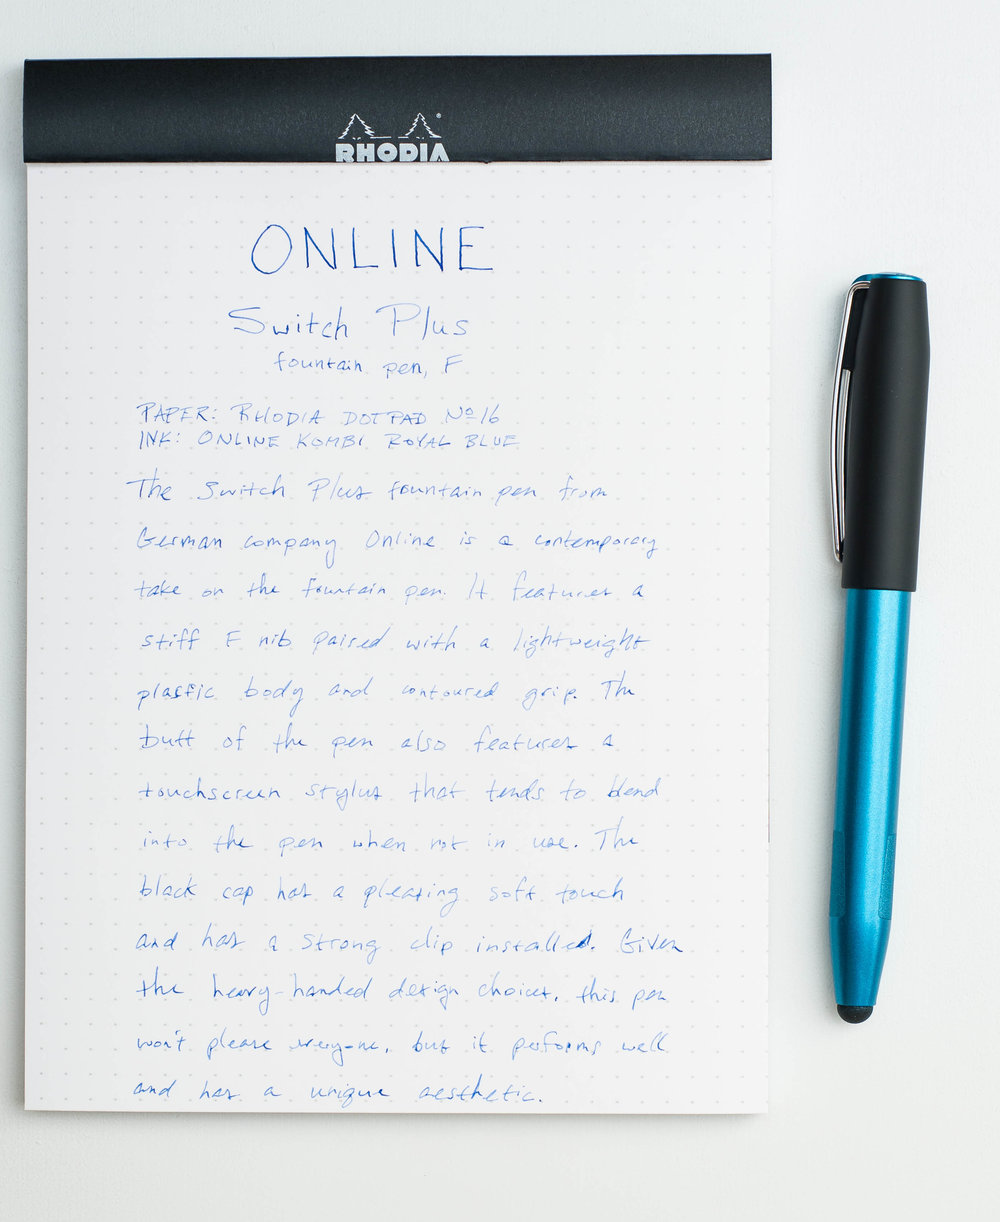 Online Switch Plus Fountain Pen Writing